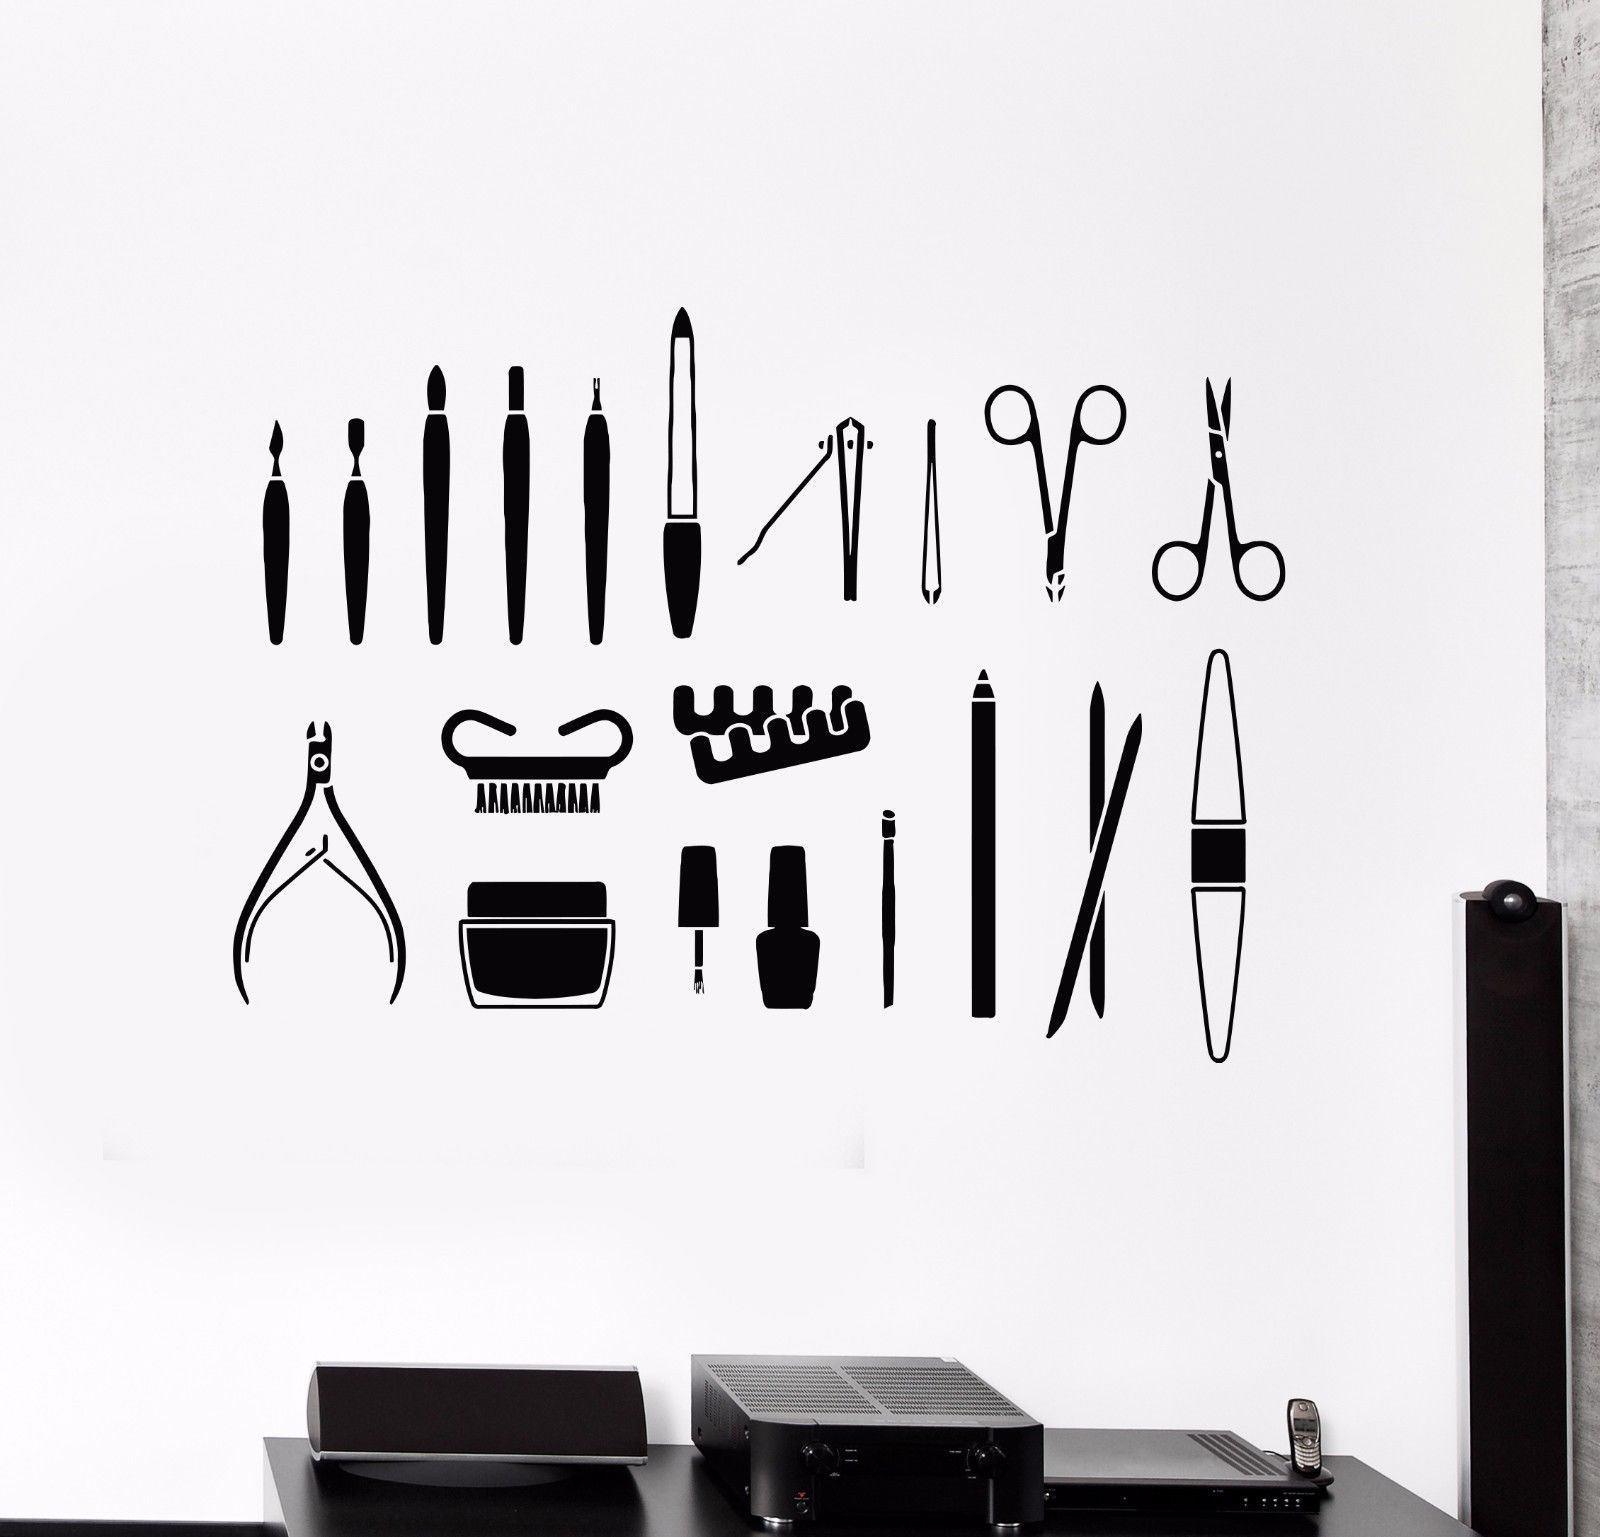 Details about Vinyl Wall Decal Beauty Salon Tools Nail